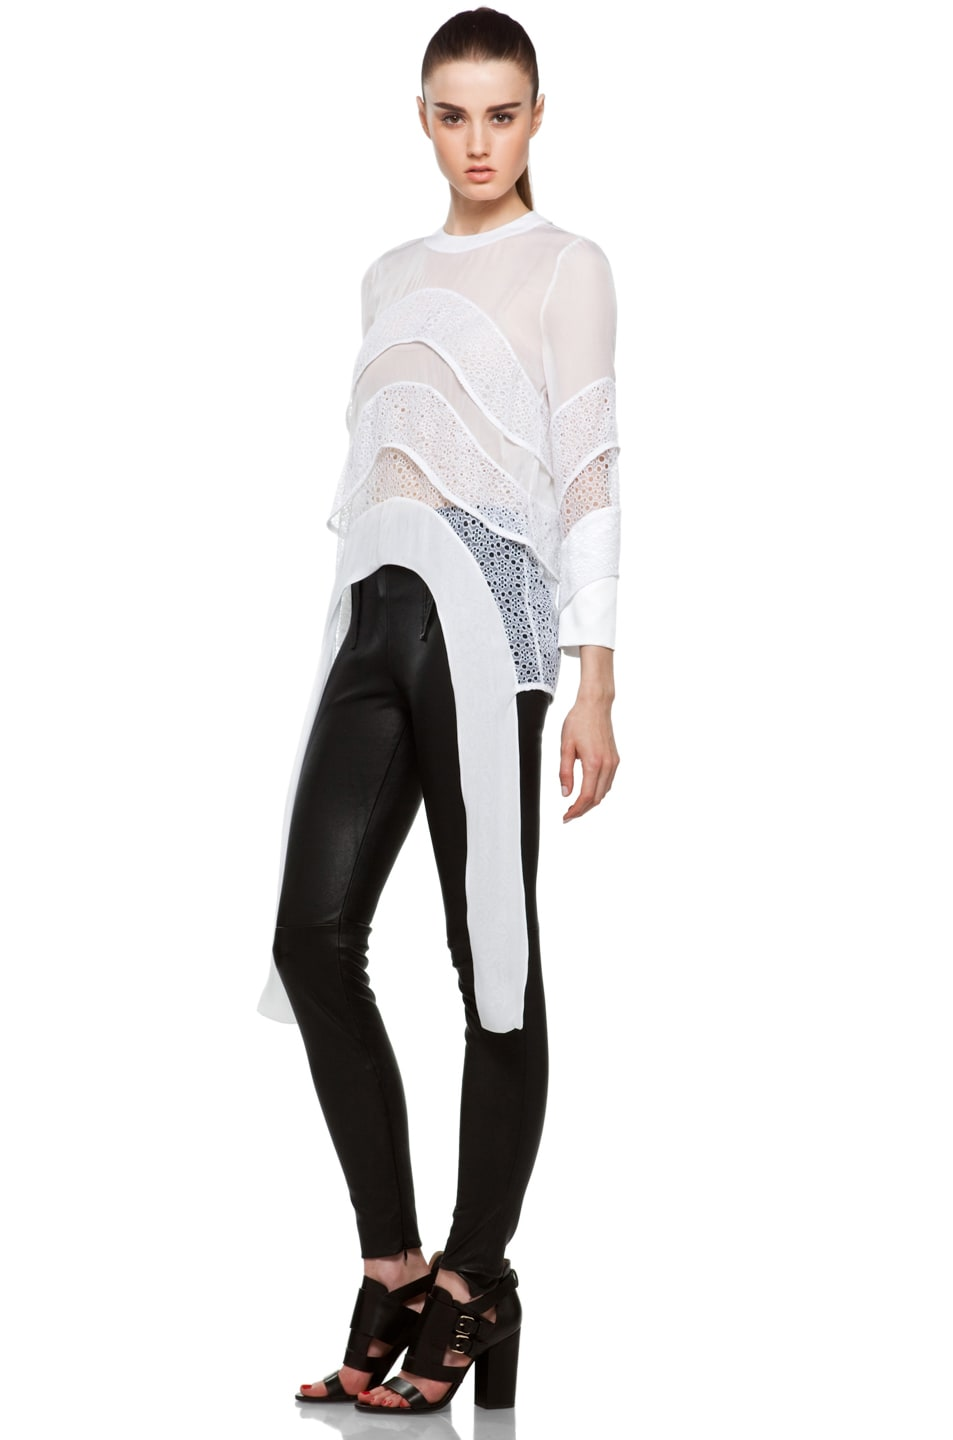 Image 2 of GIVENCHY Tiered Chiffon Lace Top with Tails in White